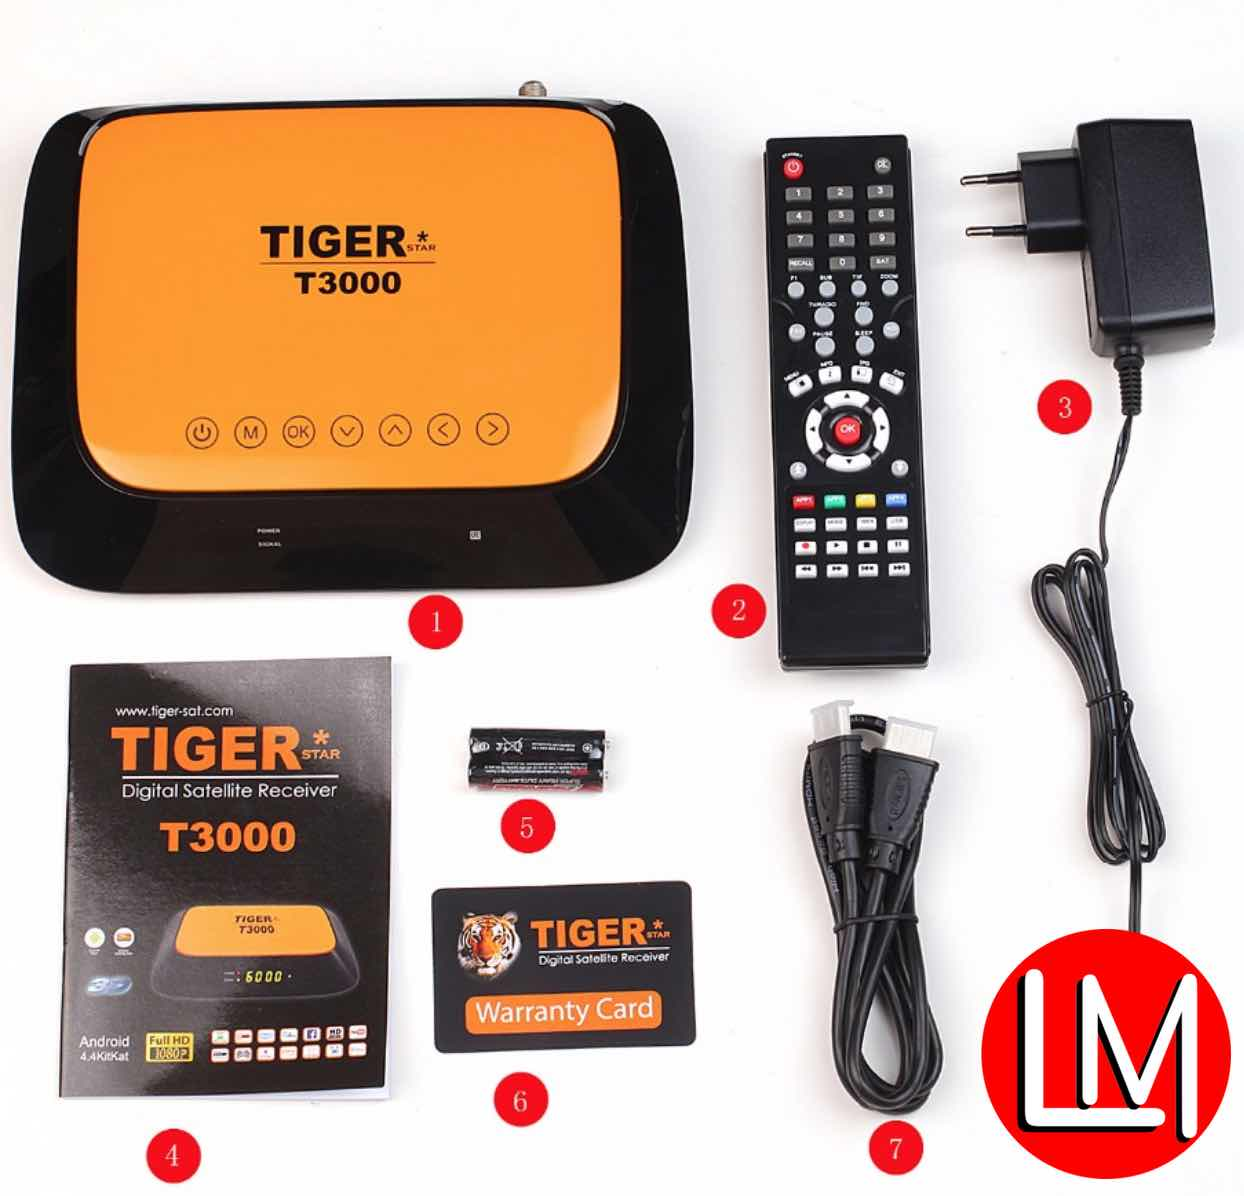 Best BISS Auto-roll decoders that can Open Biss Channels Automatically